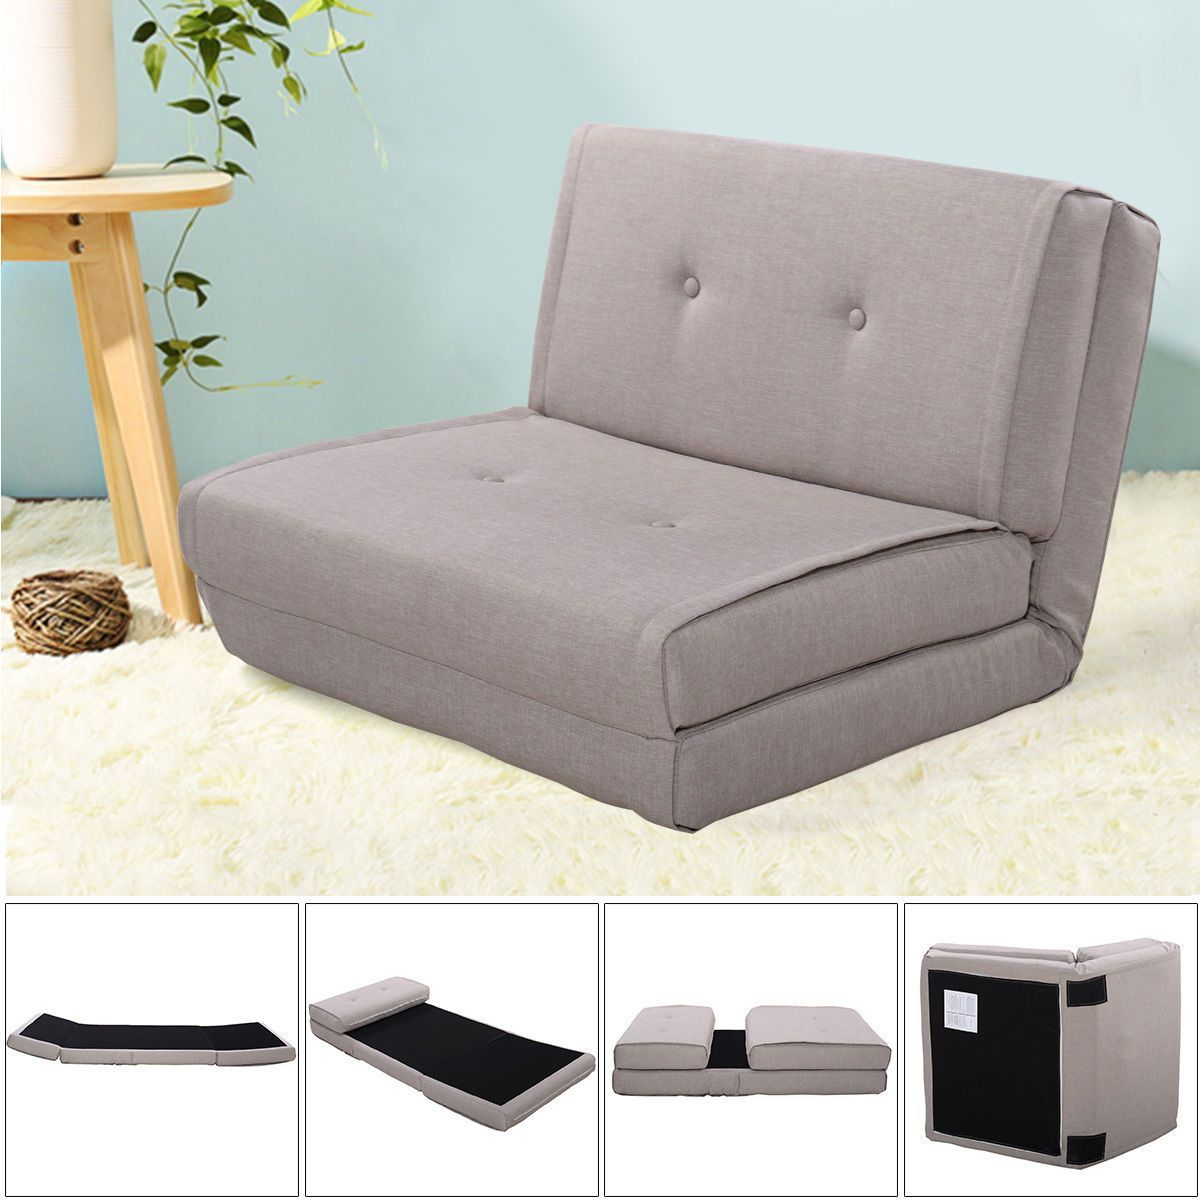 Tremendous Giantex Fold Down Sofa Bed Living Room Flip Out Lounger Alphanode Cool Chair Designs And Ideas Alphanodeonline